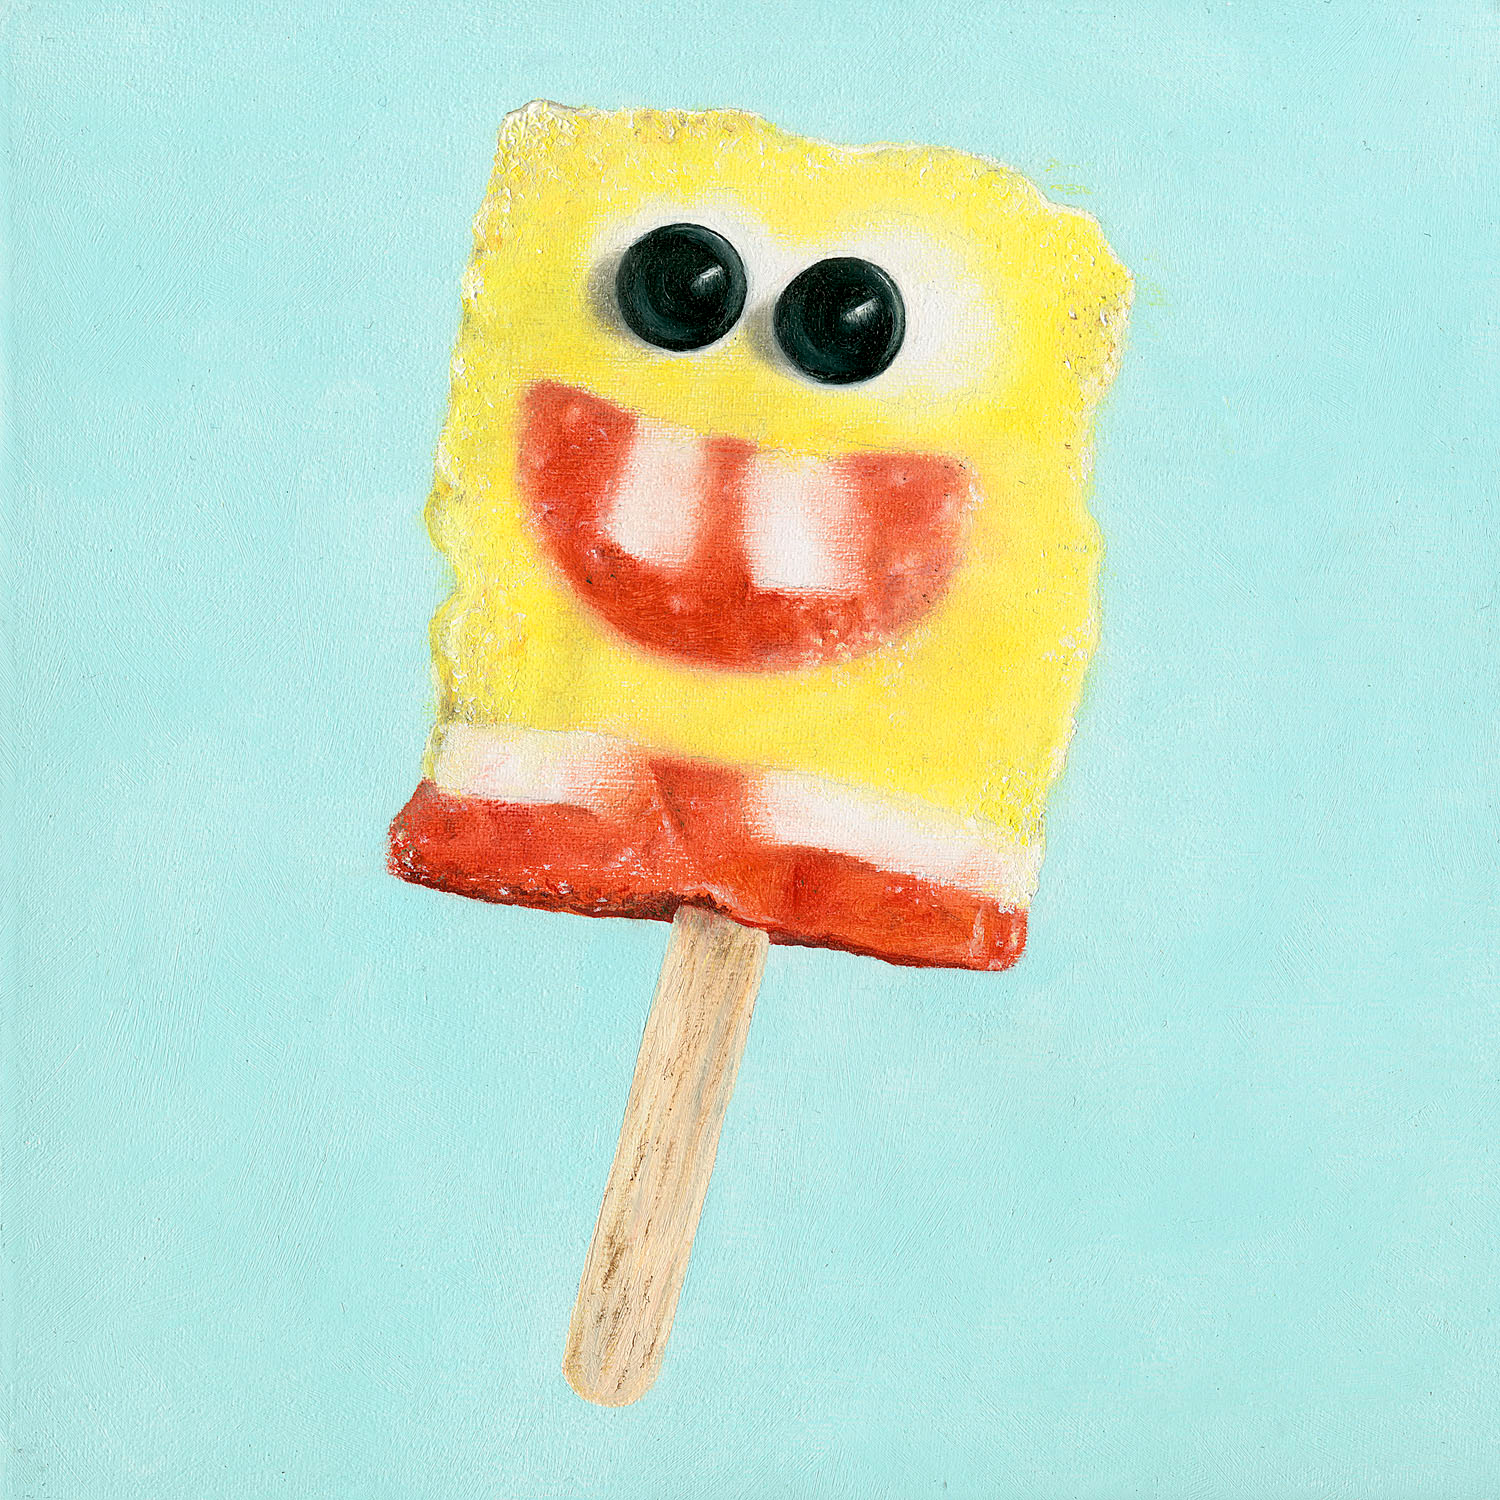 MILLENNIAL ICONS: SpongBob Popsicle